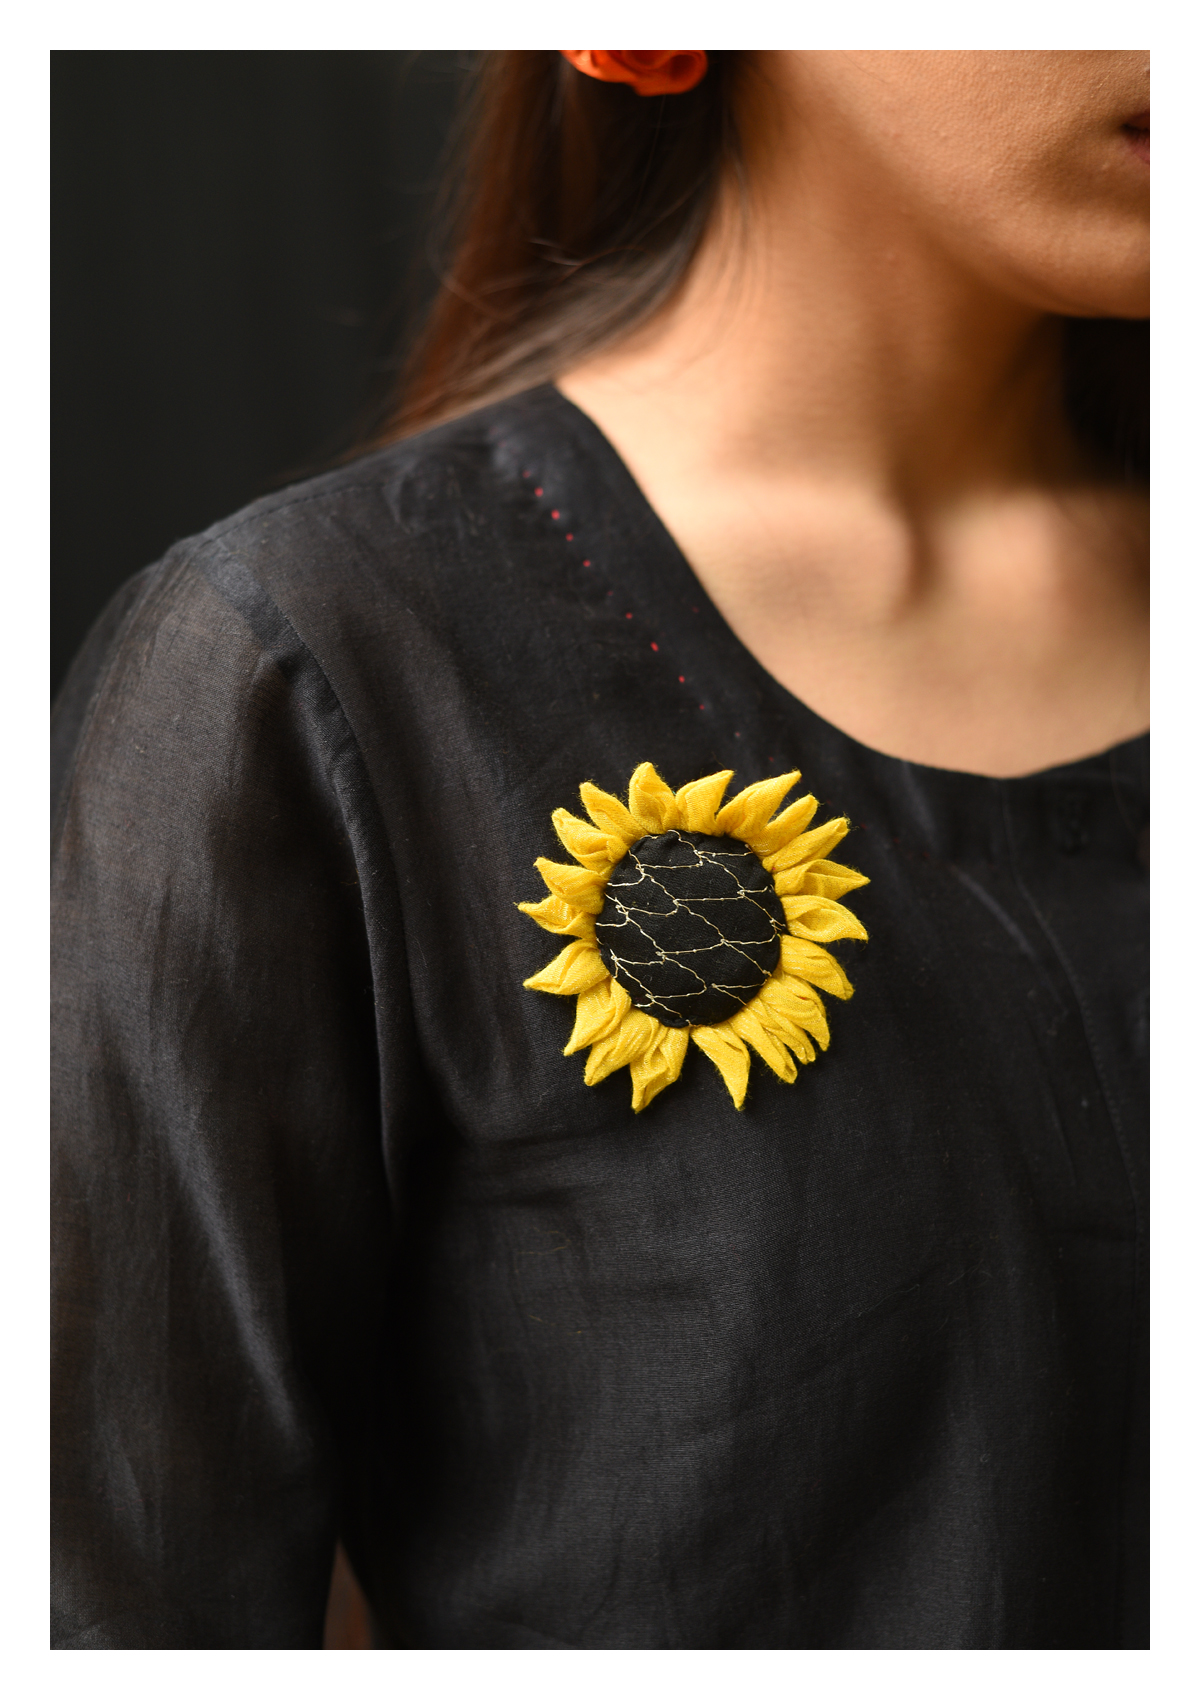 Sunflower Handmade Textile Brooch